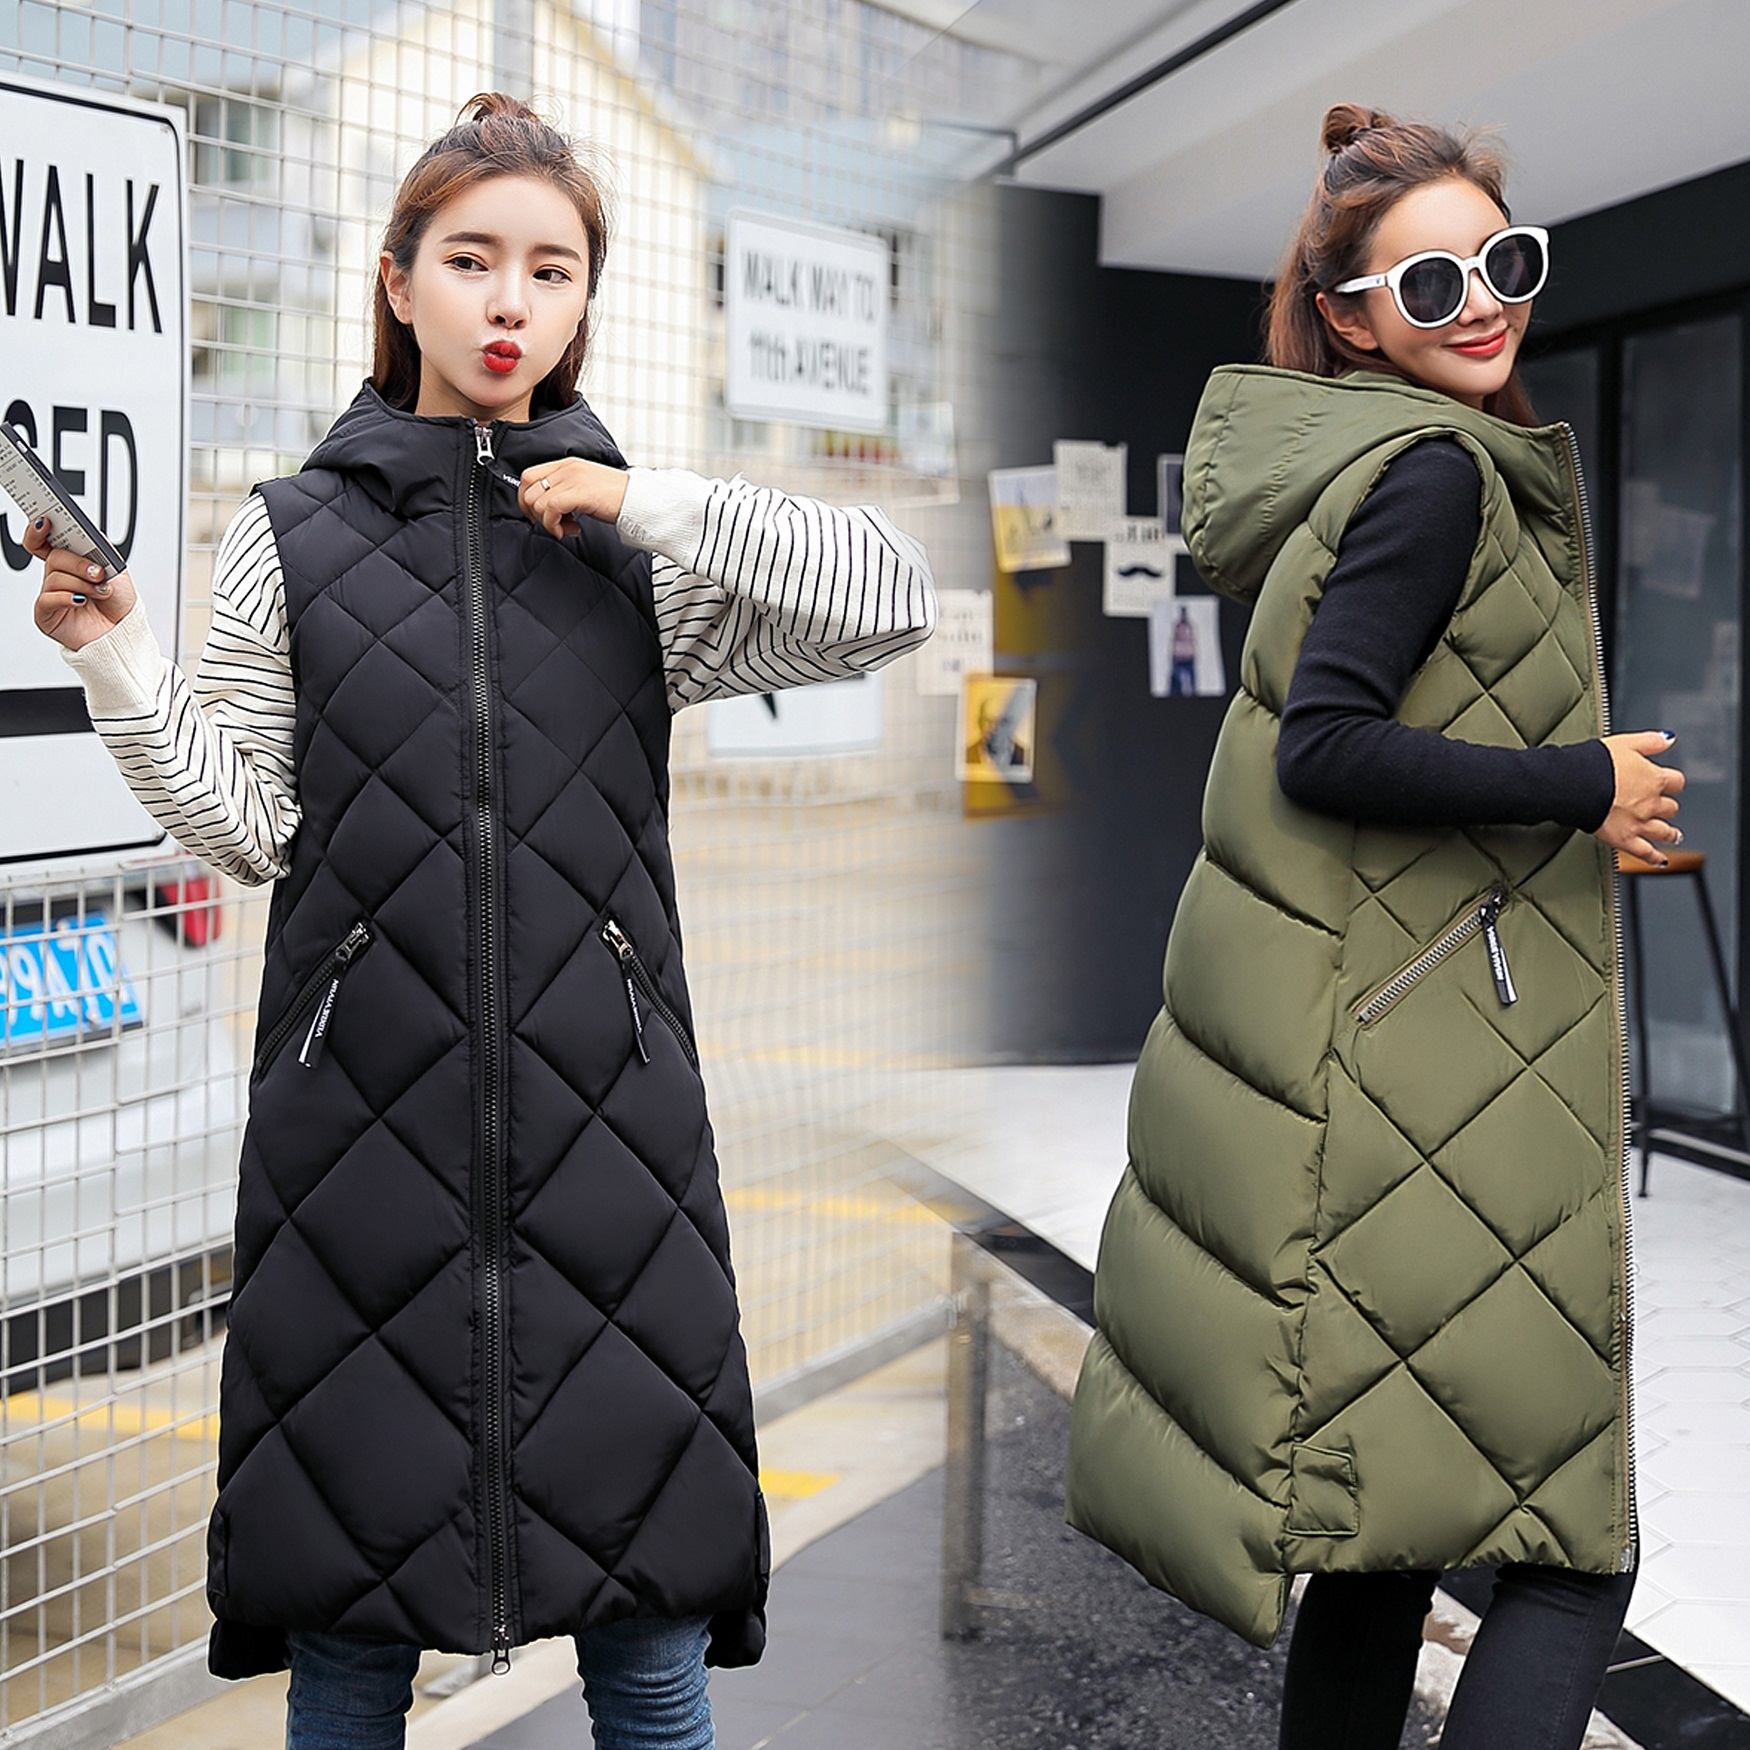 Cheap Wholesale 2018 New Summer Winter Hot Selling Women's Fashion Casual Warm Jacket Female Bisic Coats L195